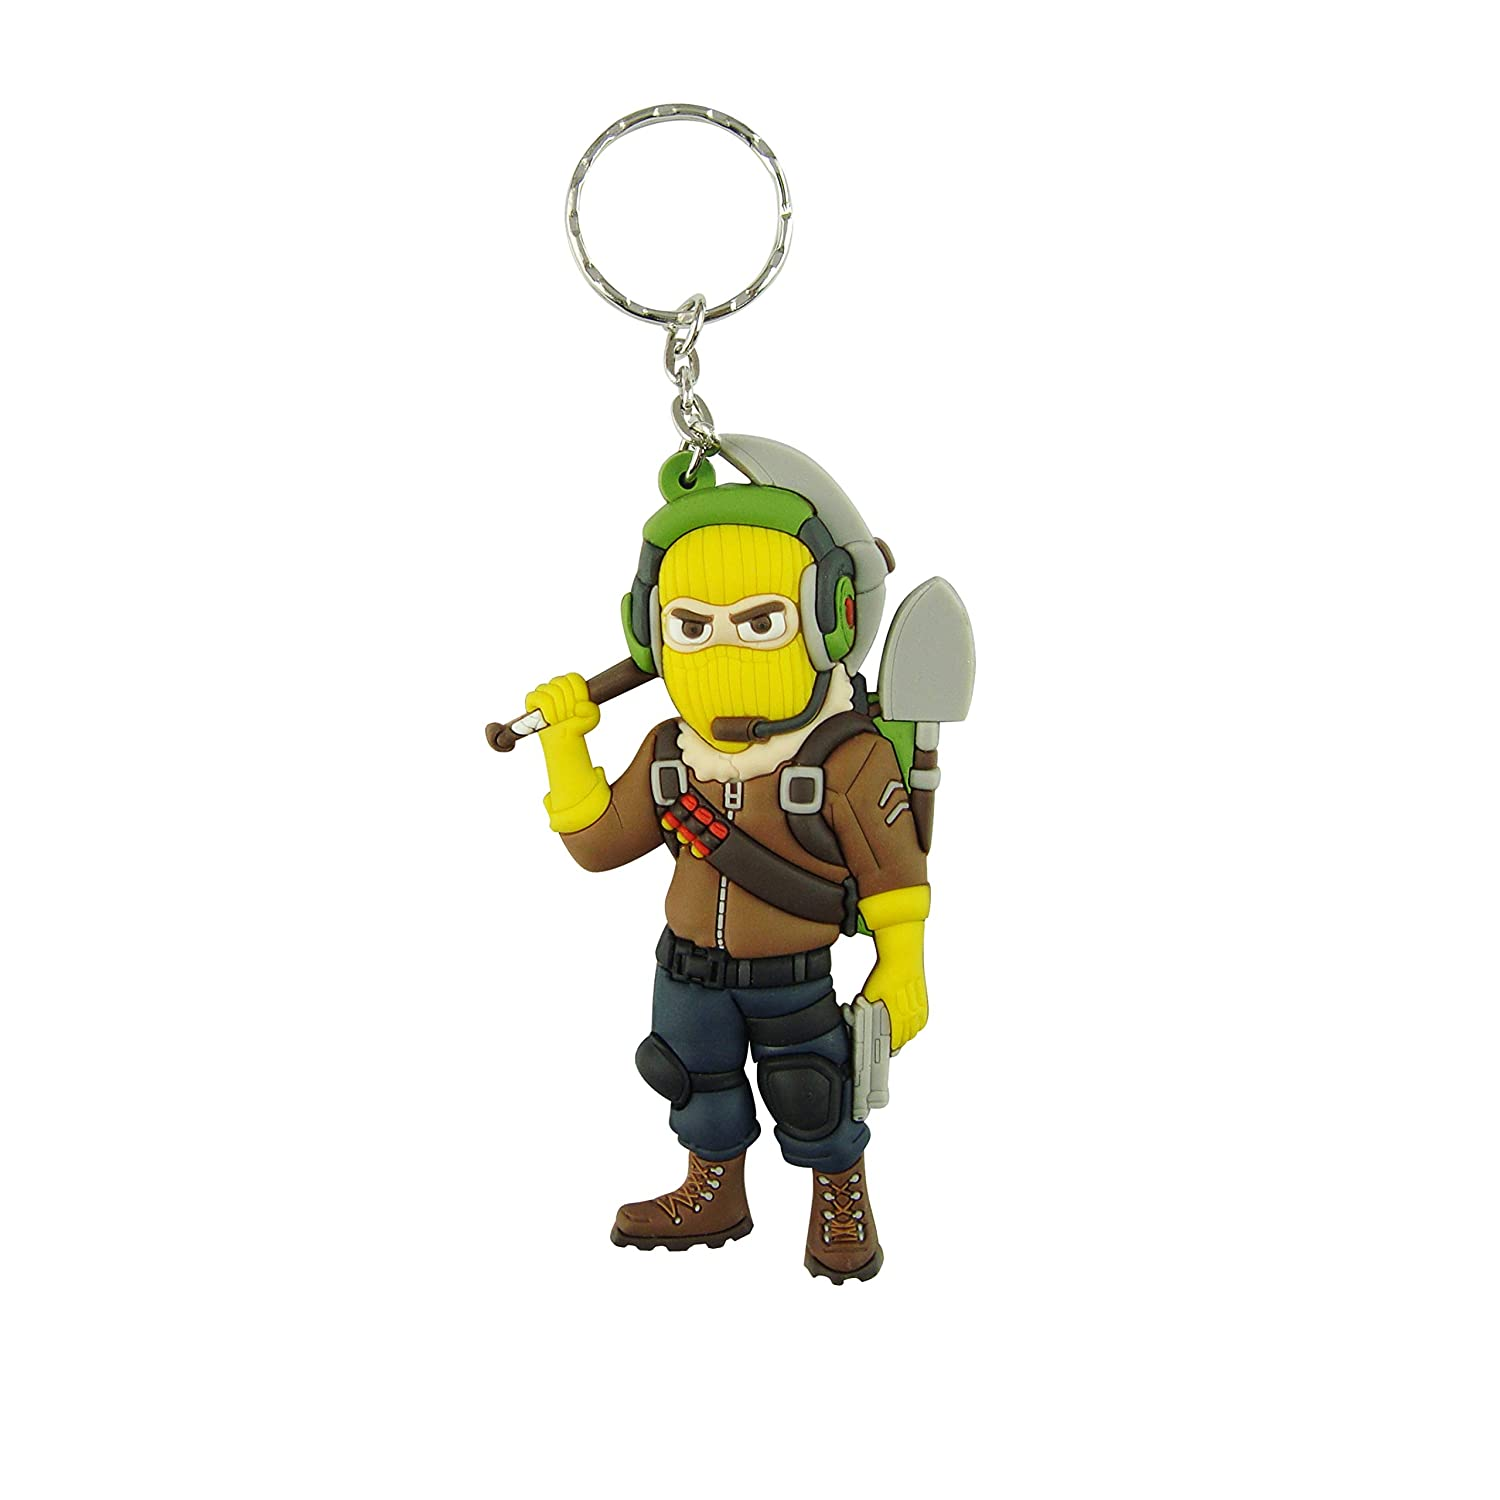 Keychains - Double Sided - 3D - 3.75 Inches - Birthday - Party Favors - Gift Supplies - Gamer - Key Chain - Key Ring (Raptor)